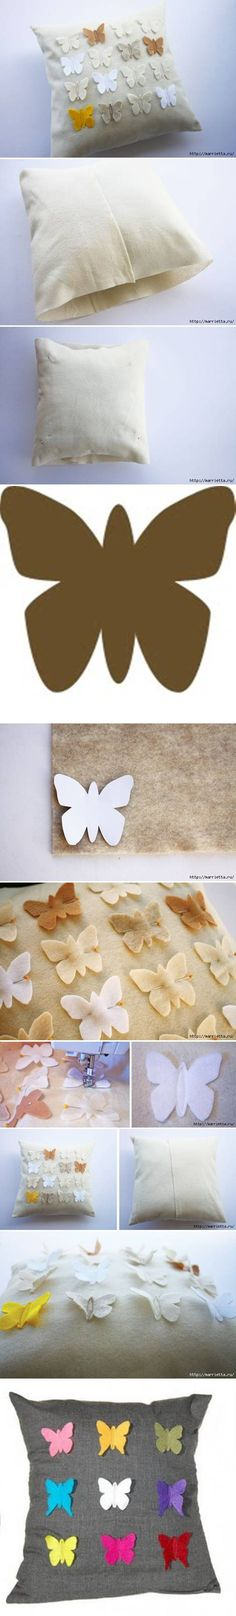 DIY Butterfly Pillow Cover